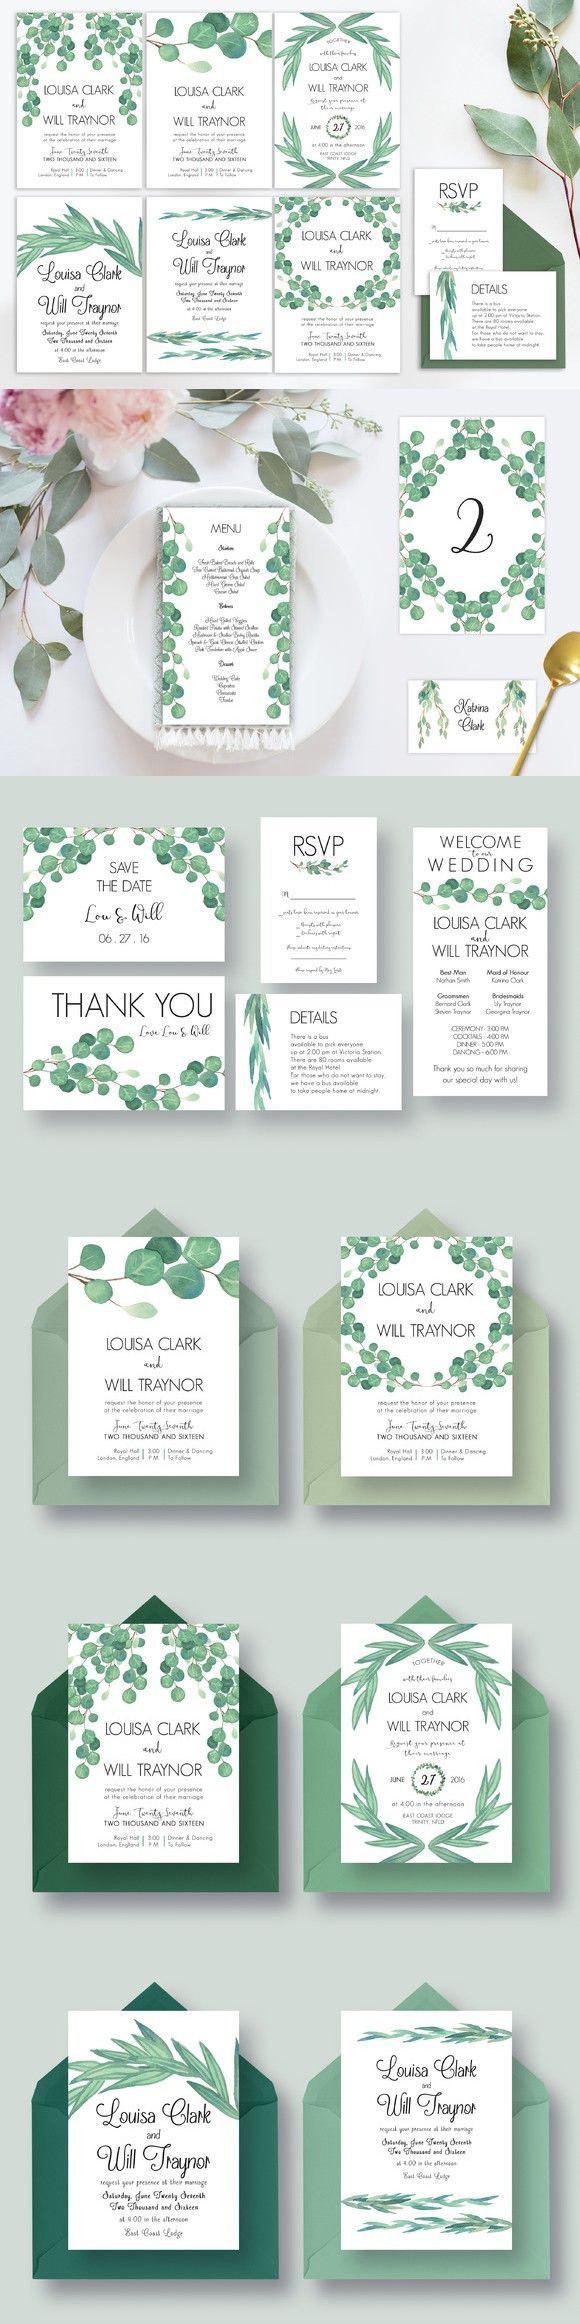 Eucalyptus Wedding Suite Vol2 Mint Wedding